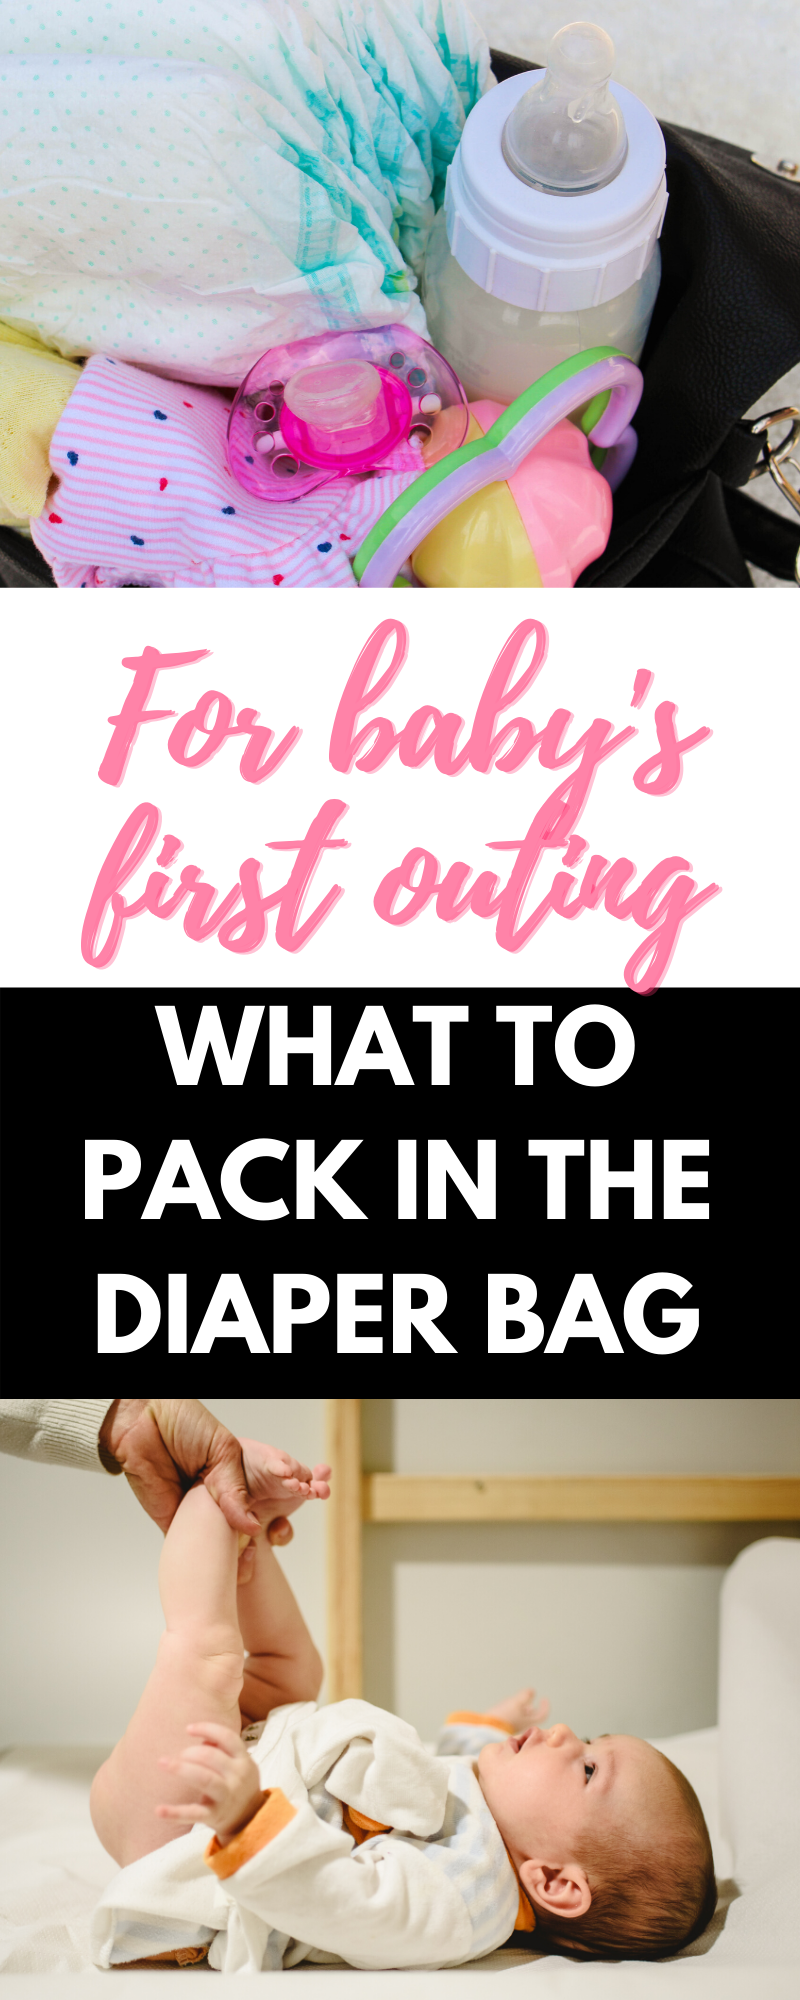 what to pack in the diaper bag